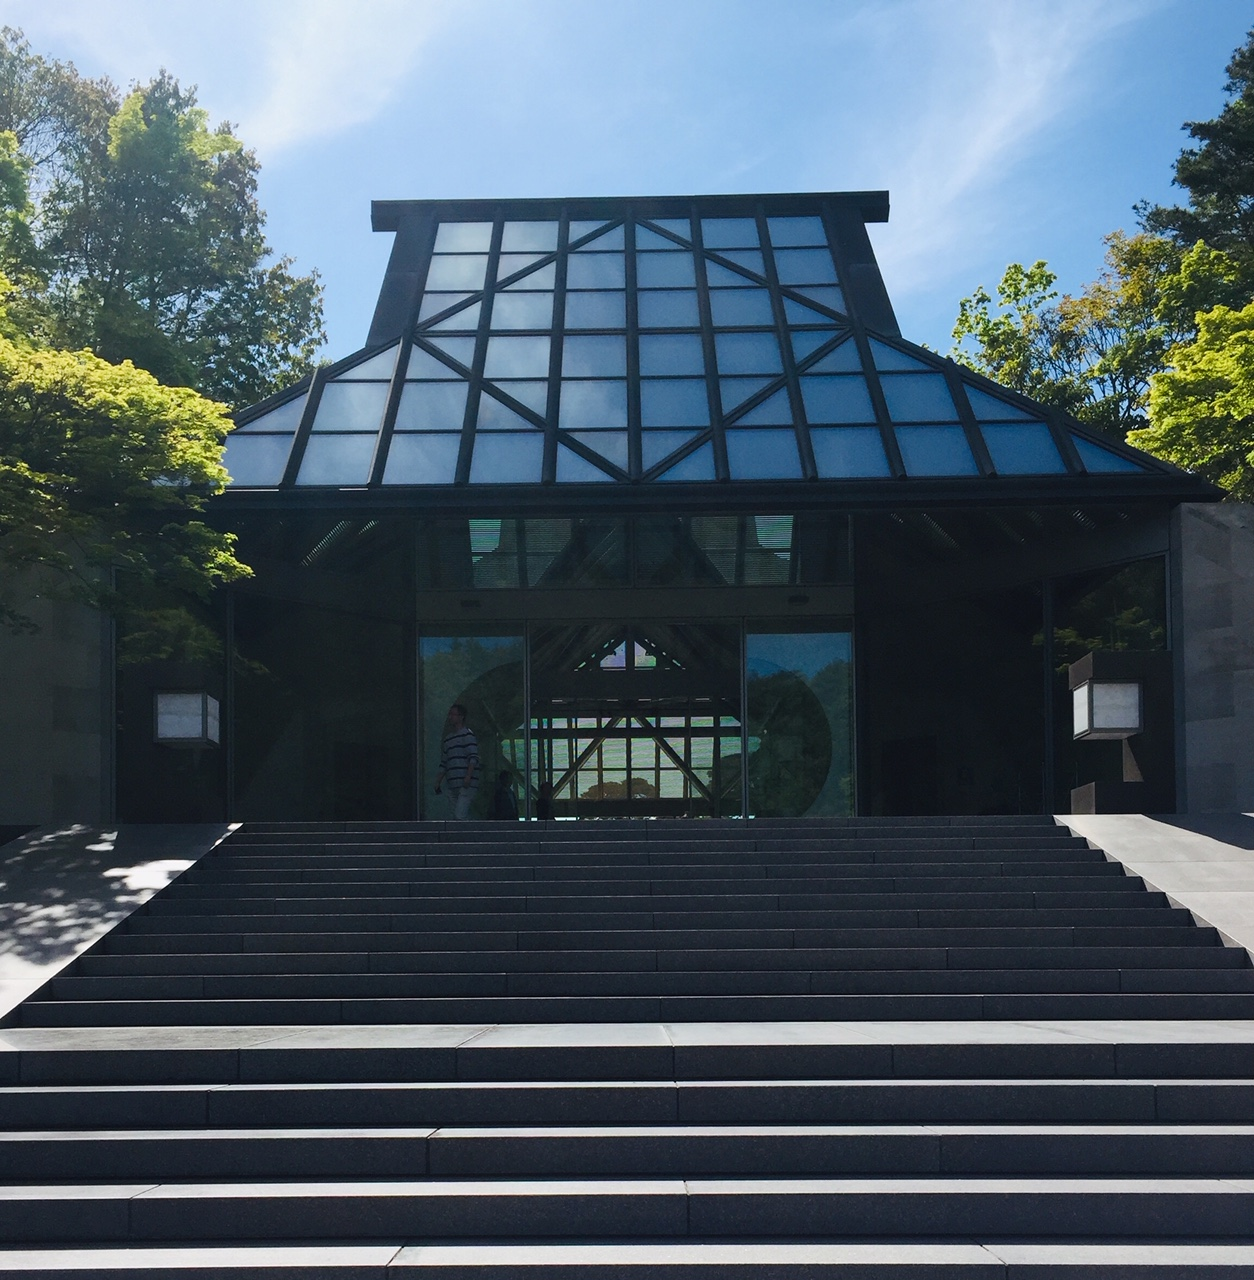 Entrance to Miho Museum